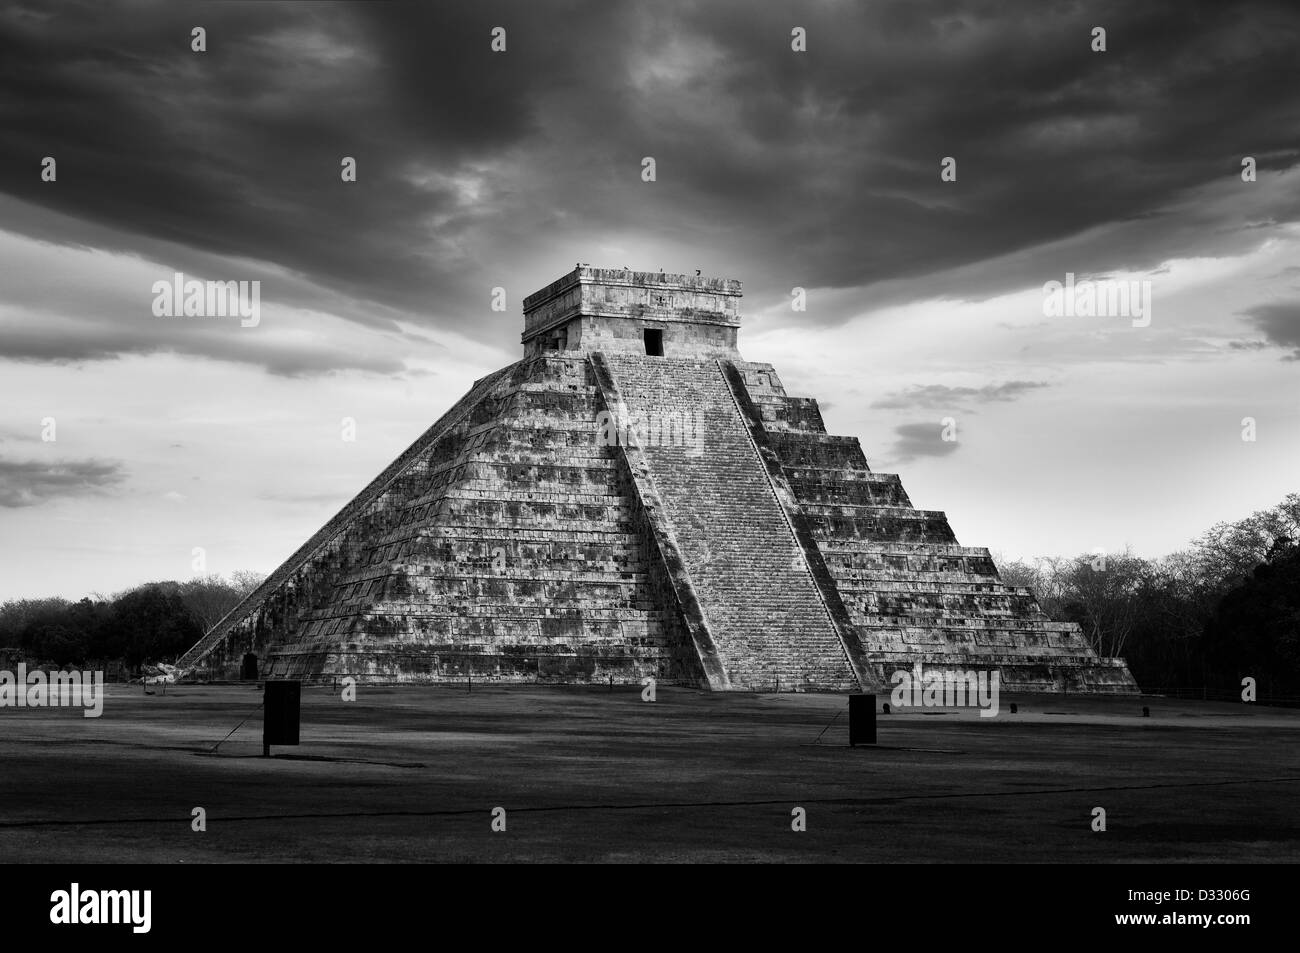 Mayan Pyramid in Chitcen Itza, Mexico - Stock Image